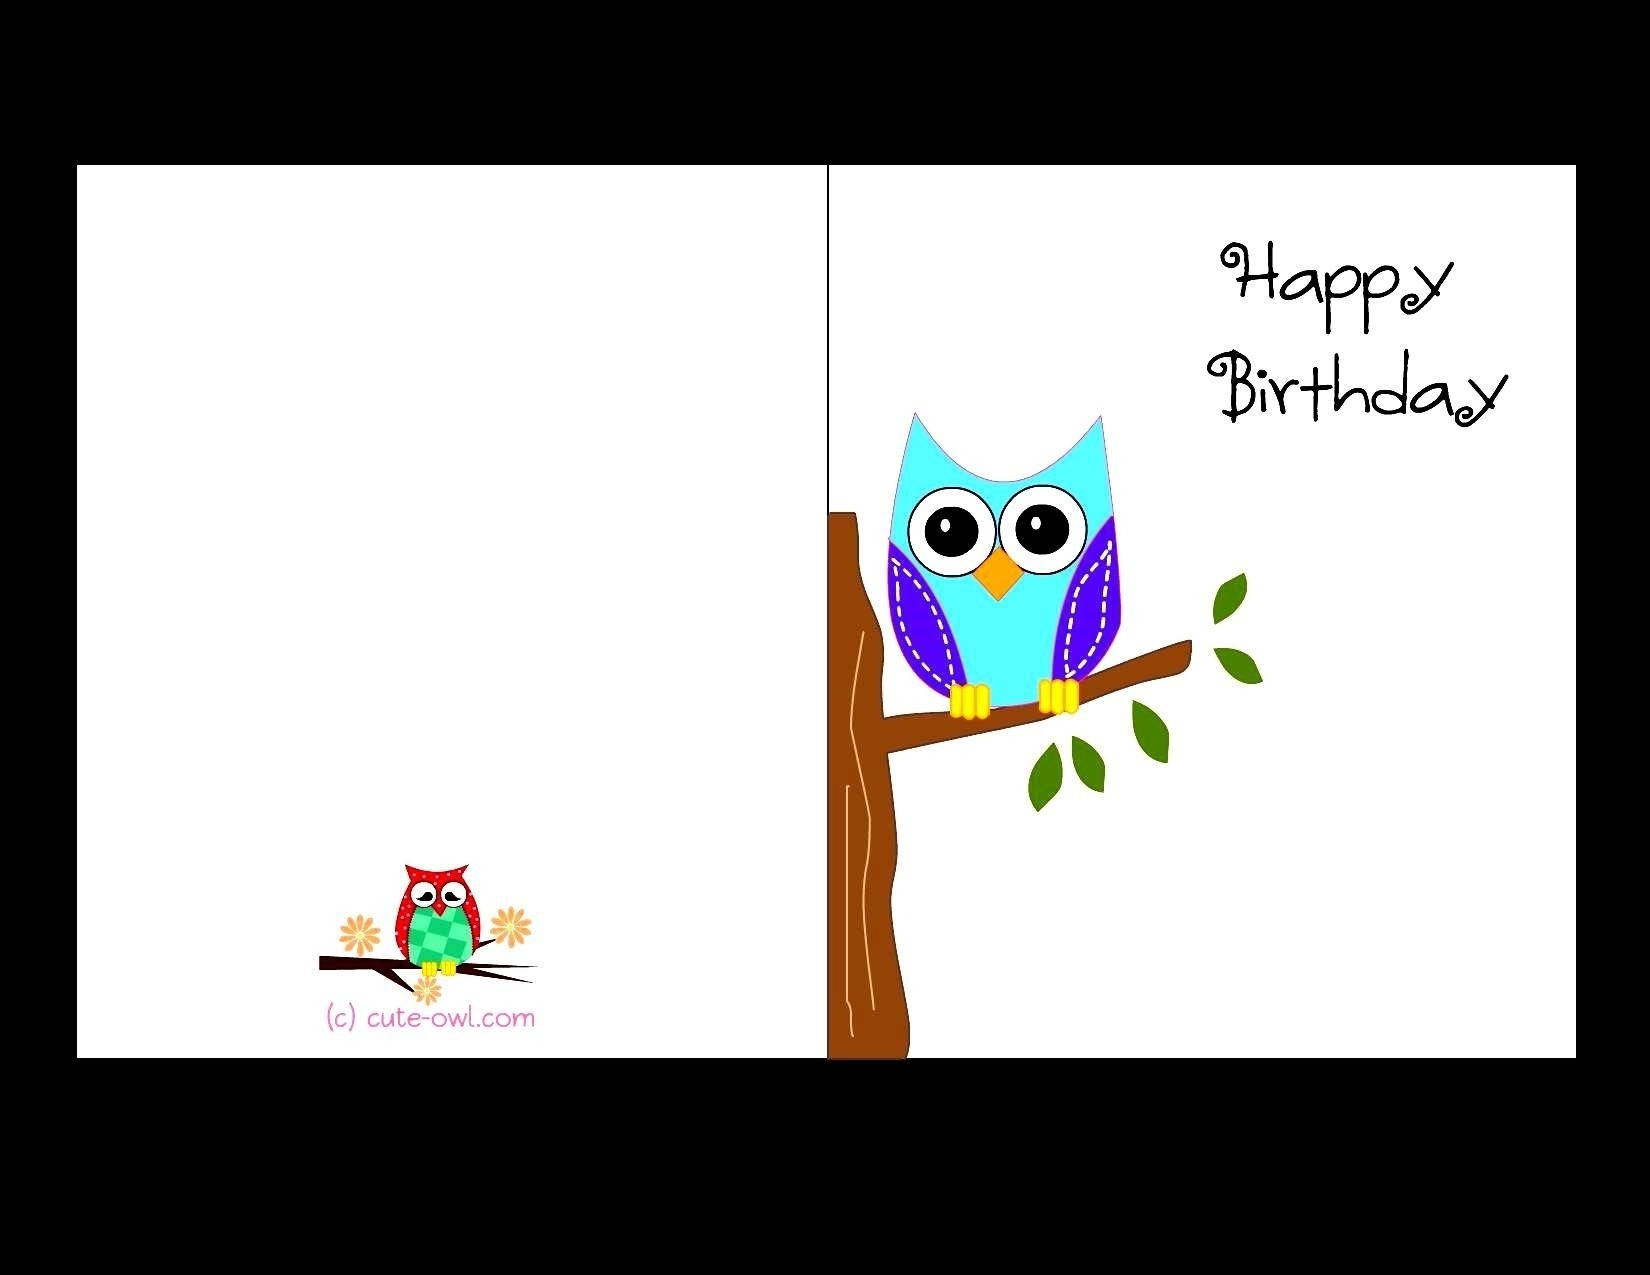 Free Printable Birthday Cards For Adults   World Of Label - Free Printable Birthday Cards For Adults